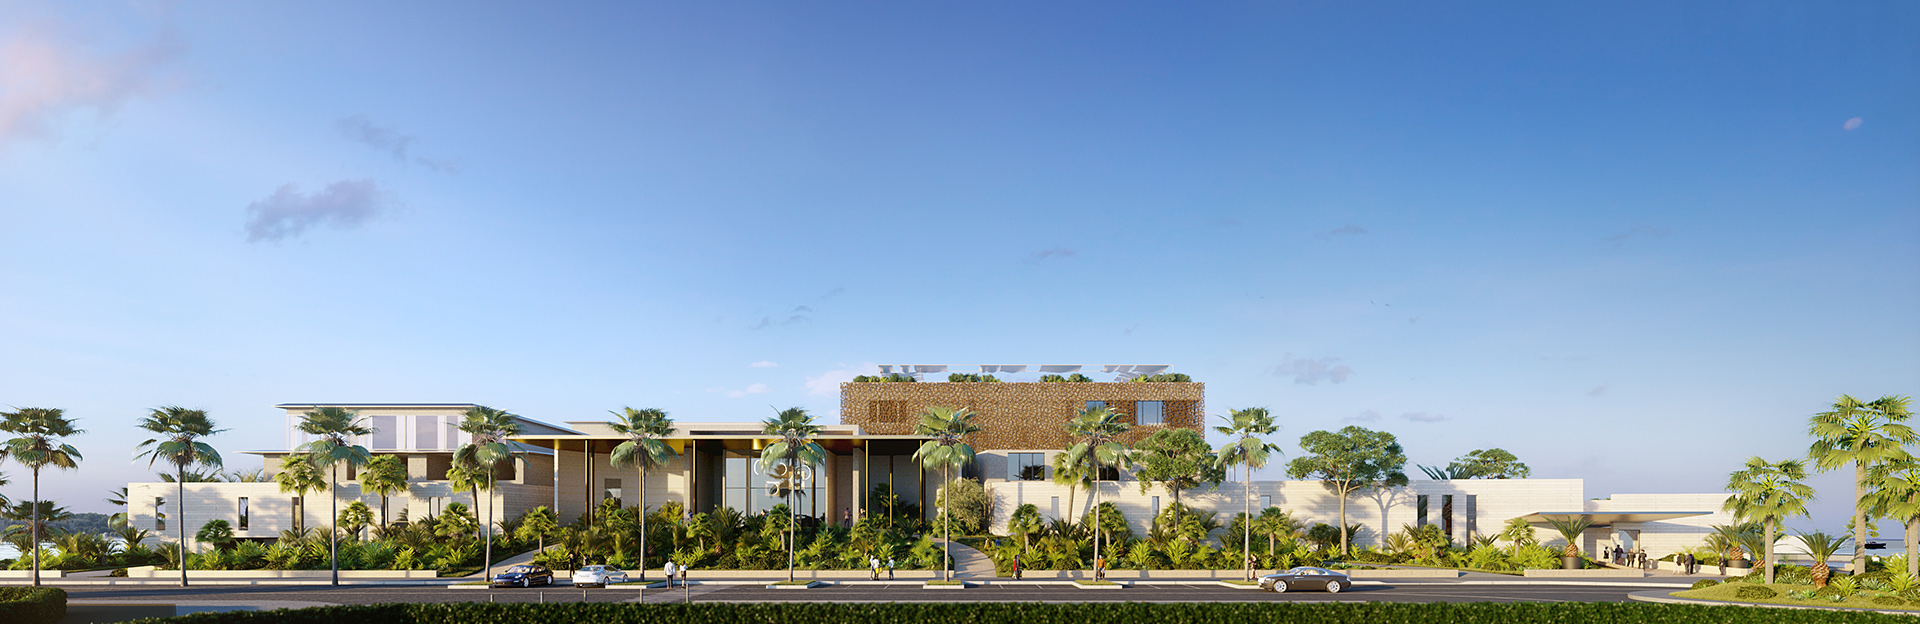 Frontal overview 3D architectural visualization of a palace in Cannes